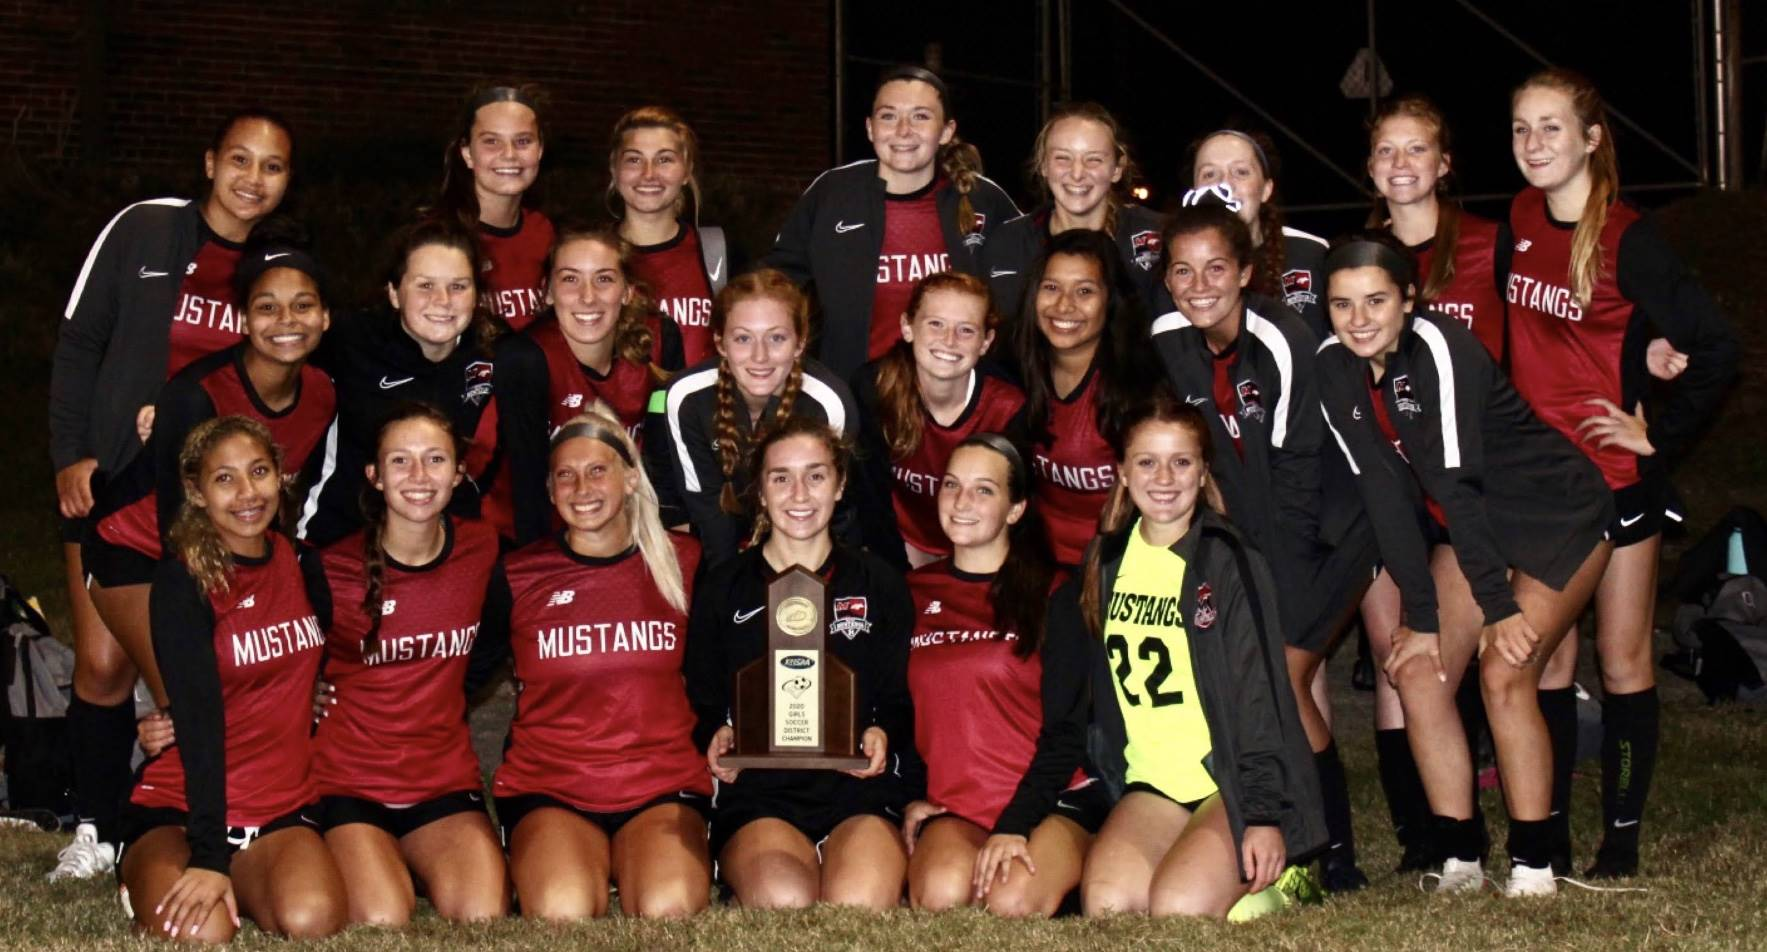 Mustangs Women's Soccer - 2020 District Champions!